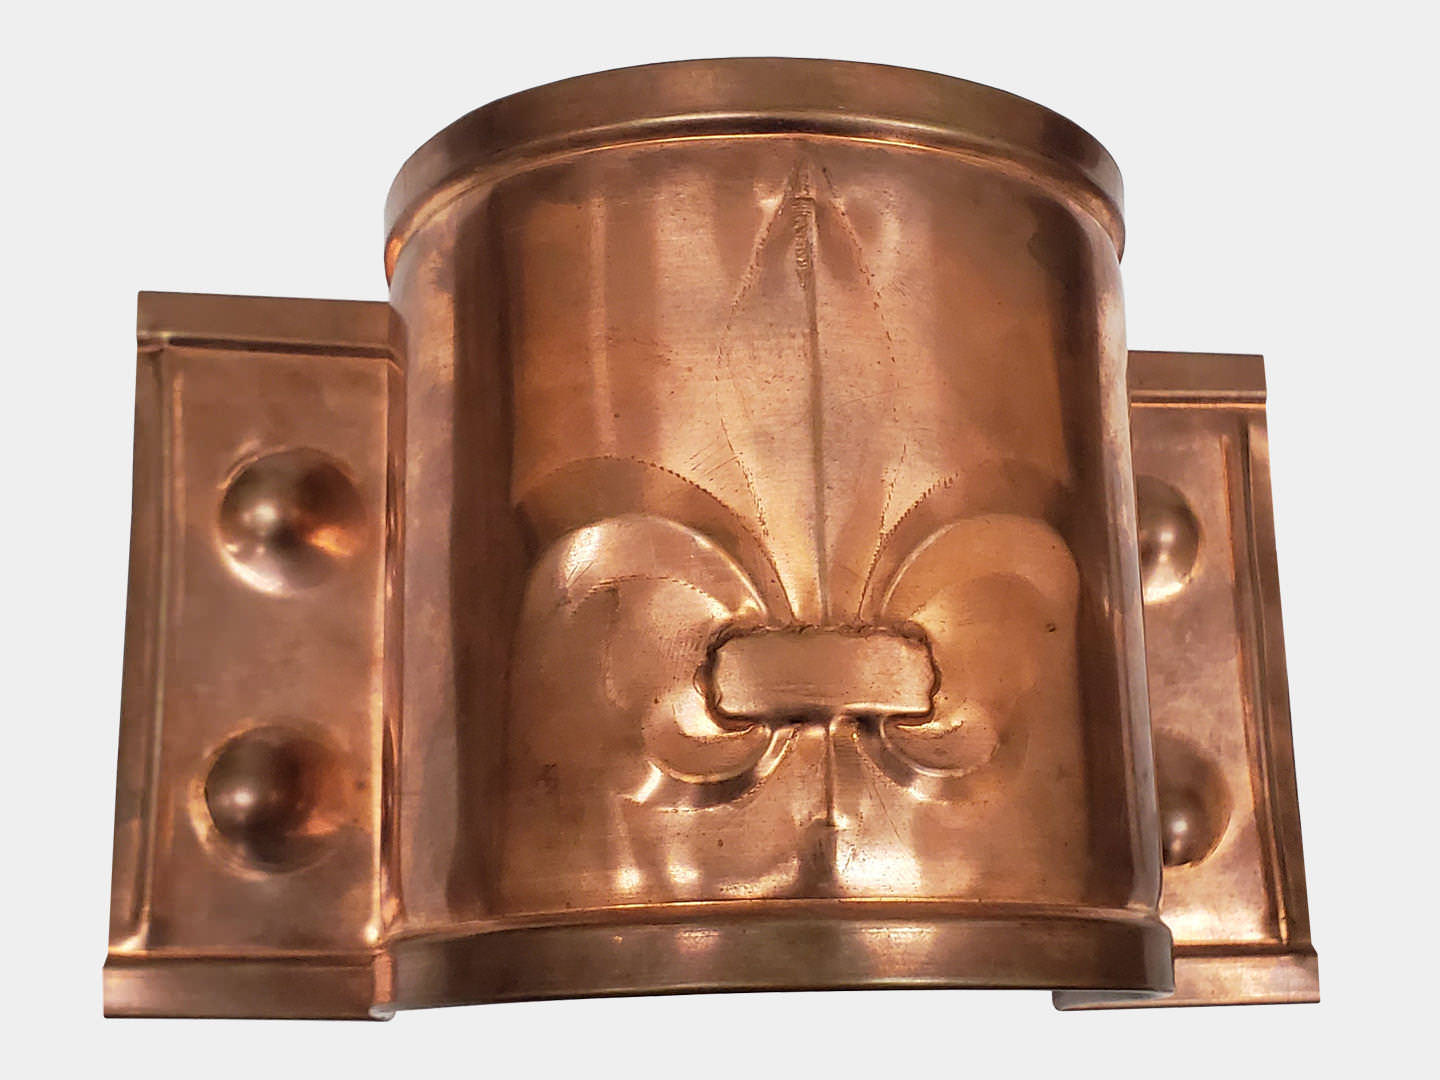 Custom stamped plain round-copper downspout strap / band